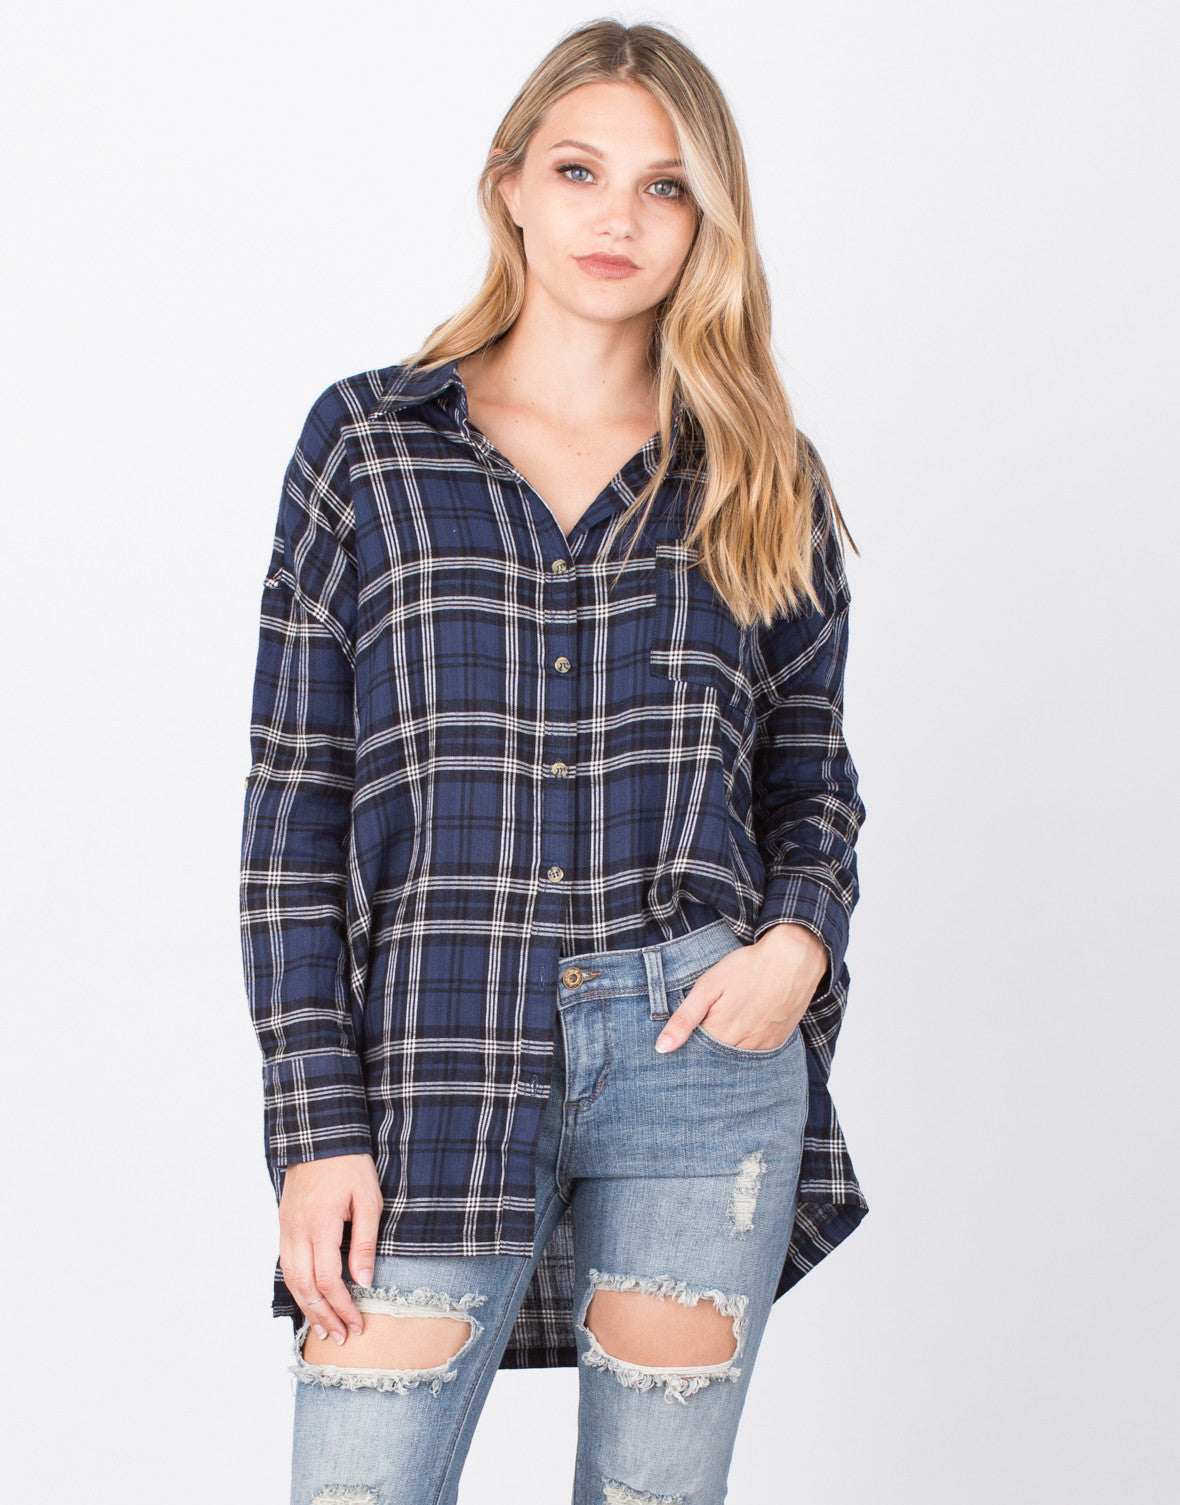 Mad for Plaid Tunic Top